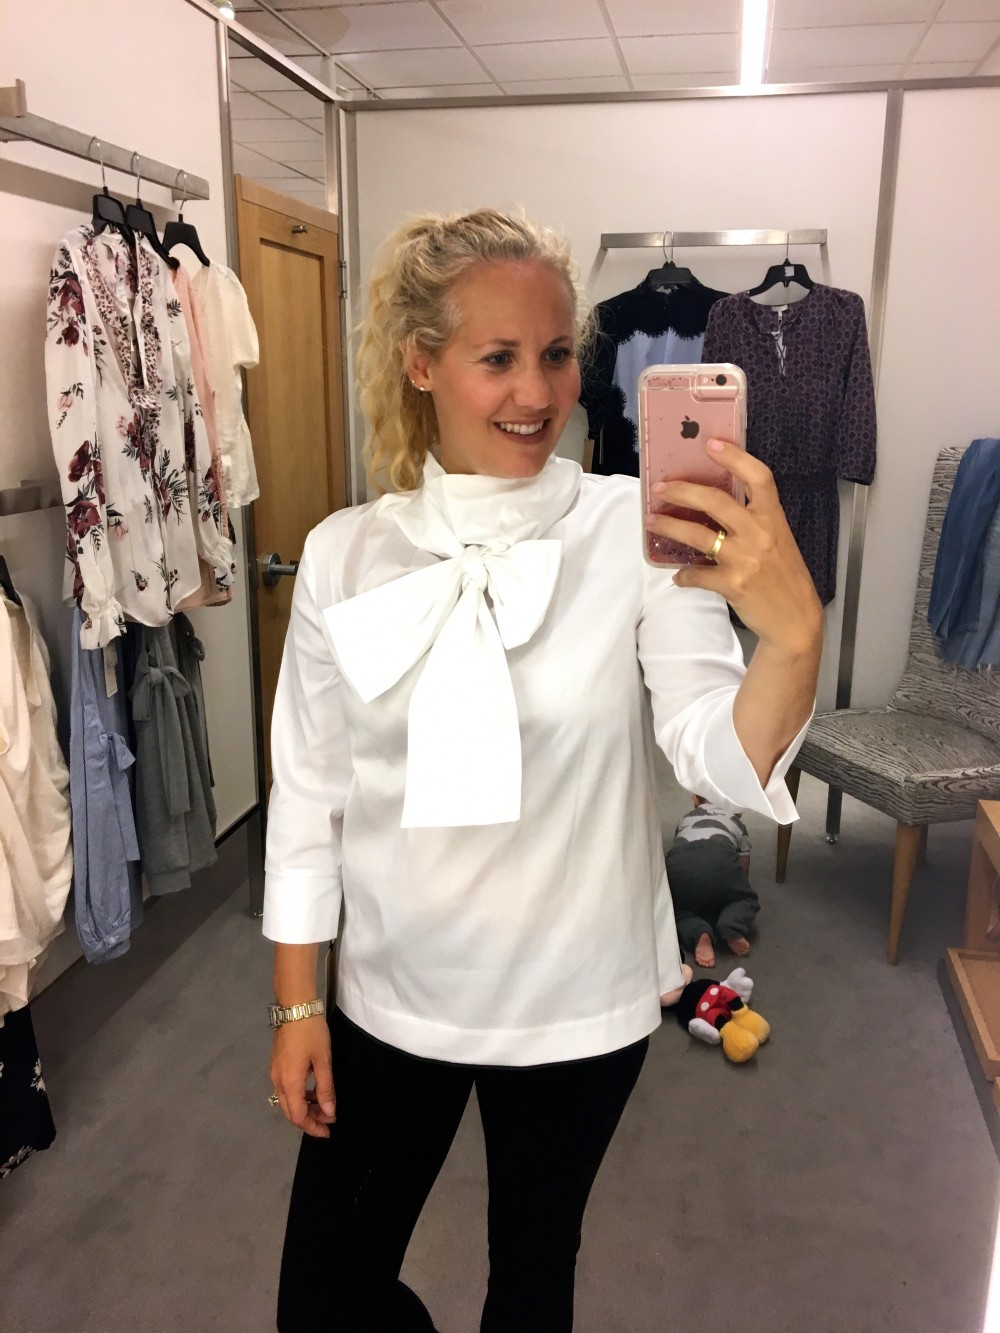 Dressing Room Diaries- Nordstrom Anniversary Sale-Fall Tops-Blogger Picks for the NSale-Nordstrom Sale-Fall Style-Fall Fashion 2017-Have Need Want 14